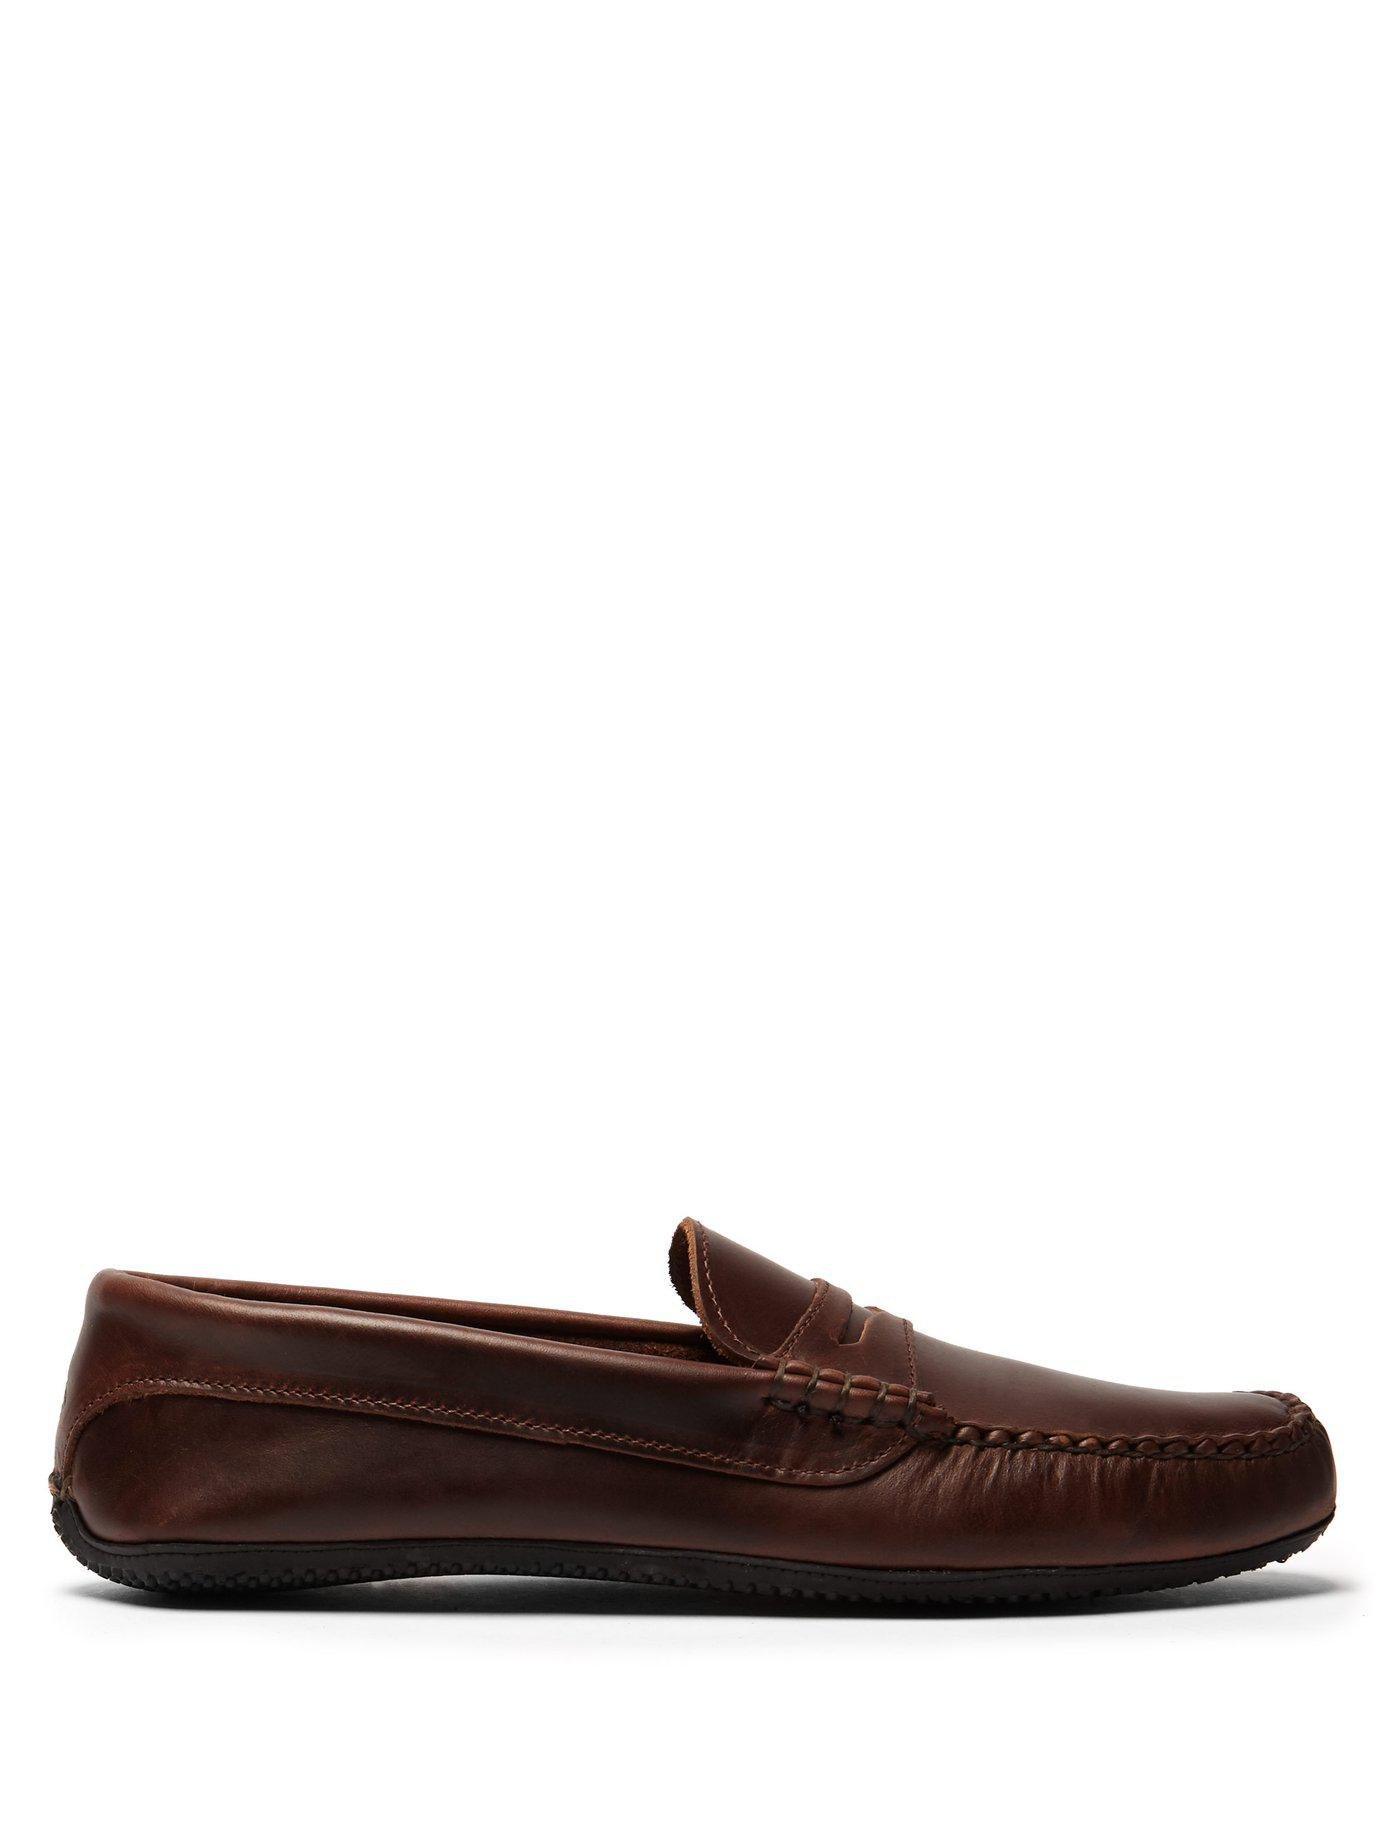 fdf2a25dd83 Lyst - Quoddy Penny Driver Leather Loafers in Brown for Men